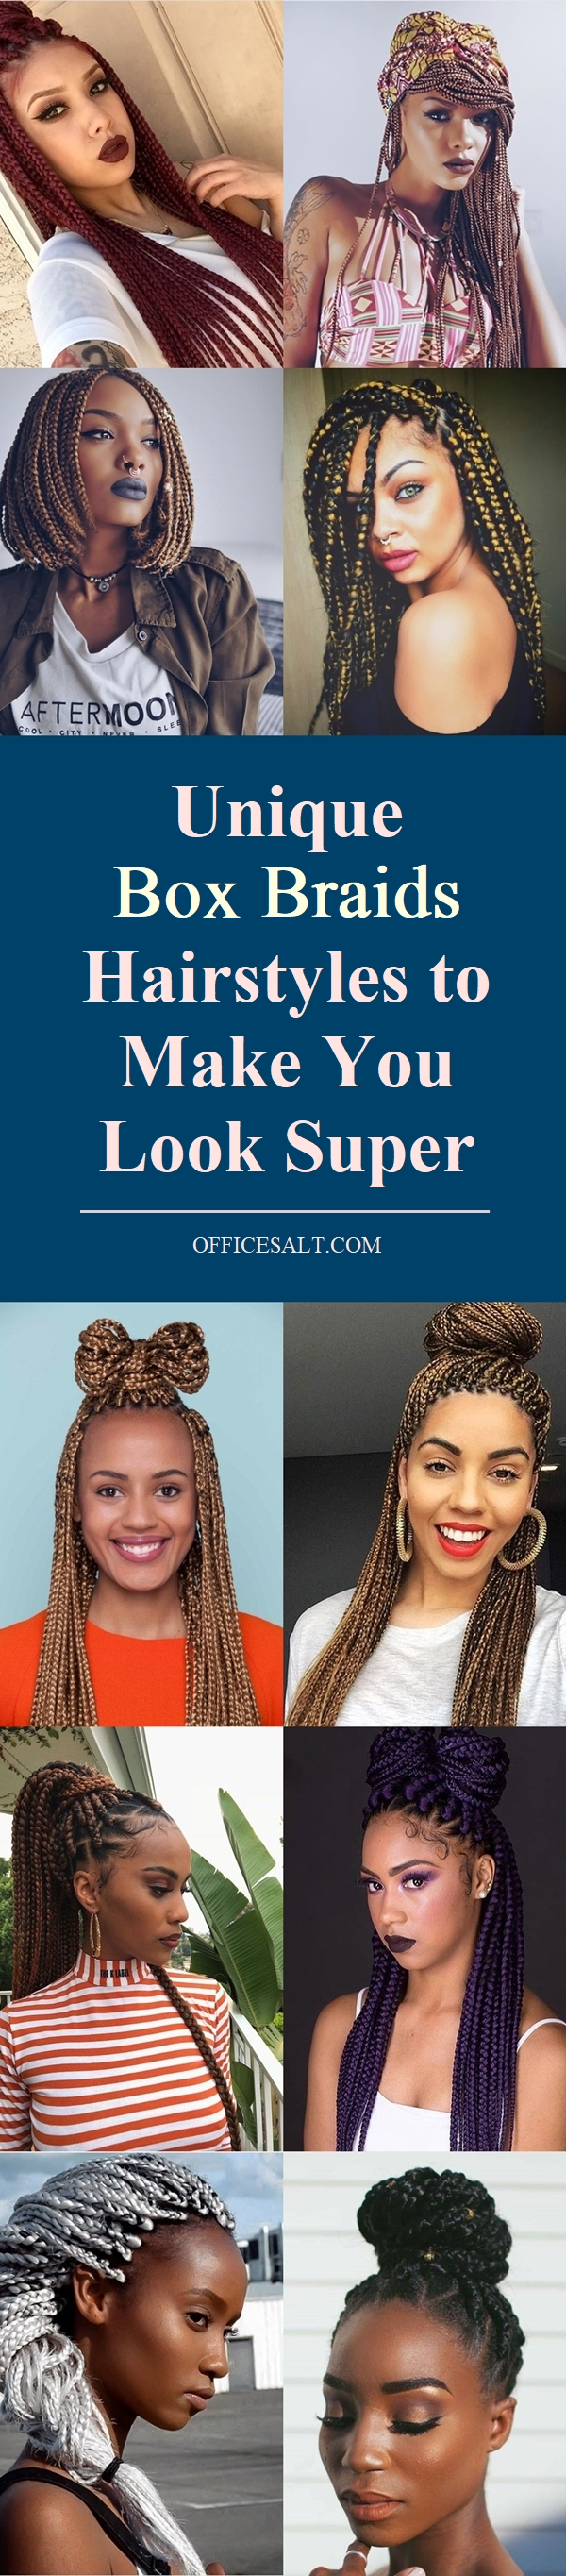 unique-box-braids-hairstyles-to-make-you-look-super